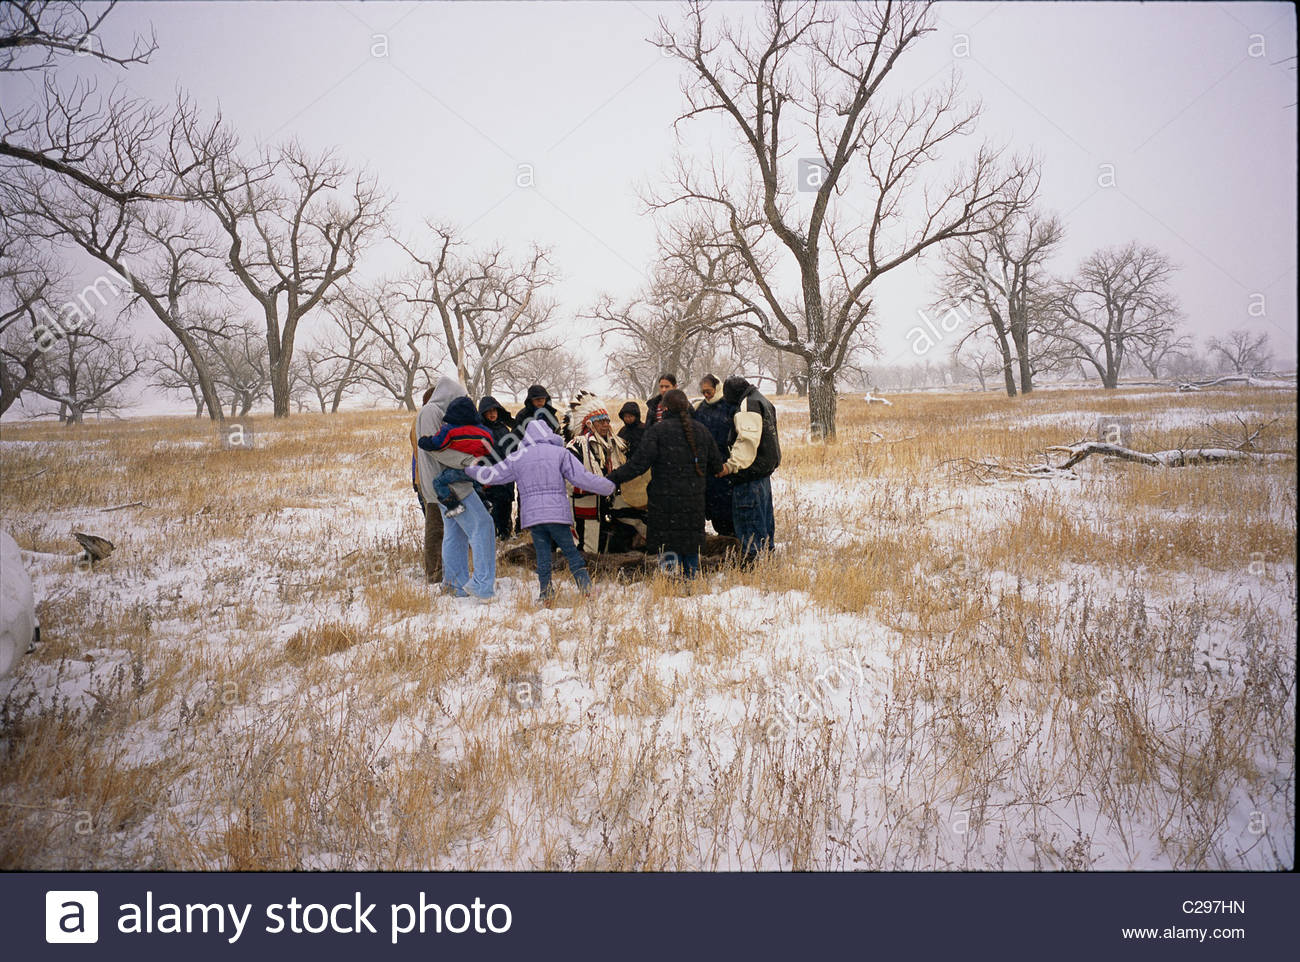 A Lakota Sioux Indian chief imparts moral teachings to his relatives. - Stock Image